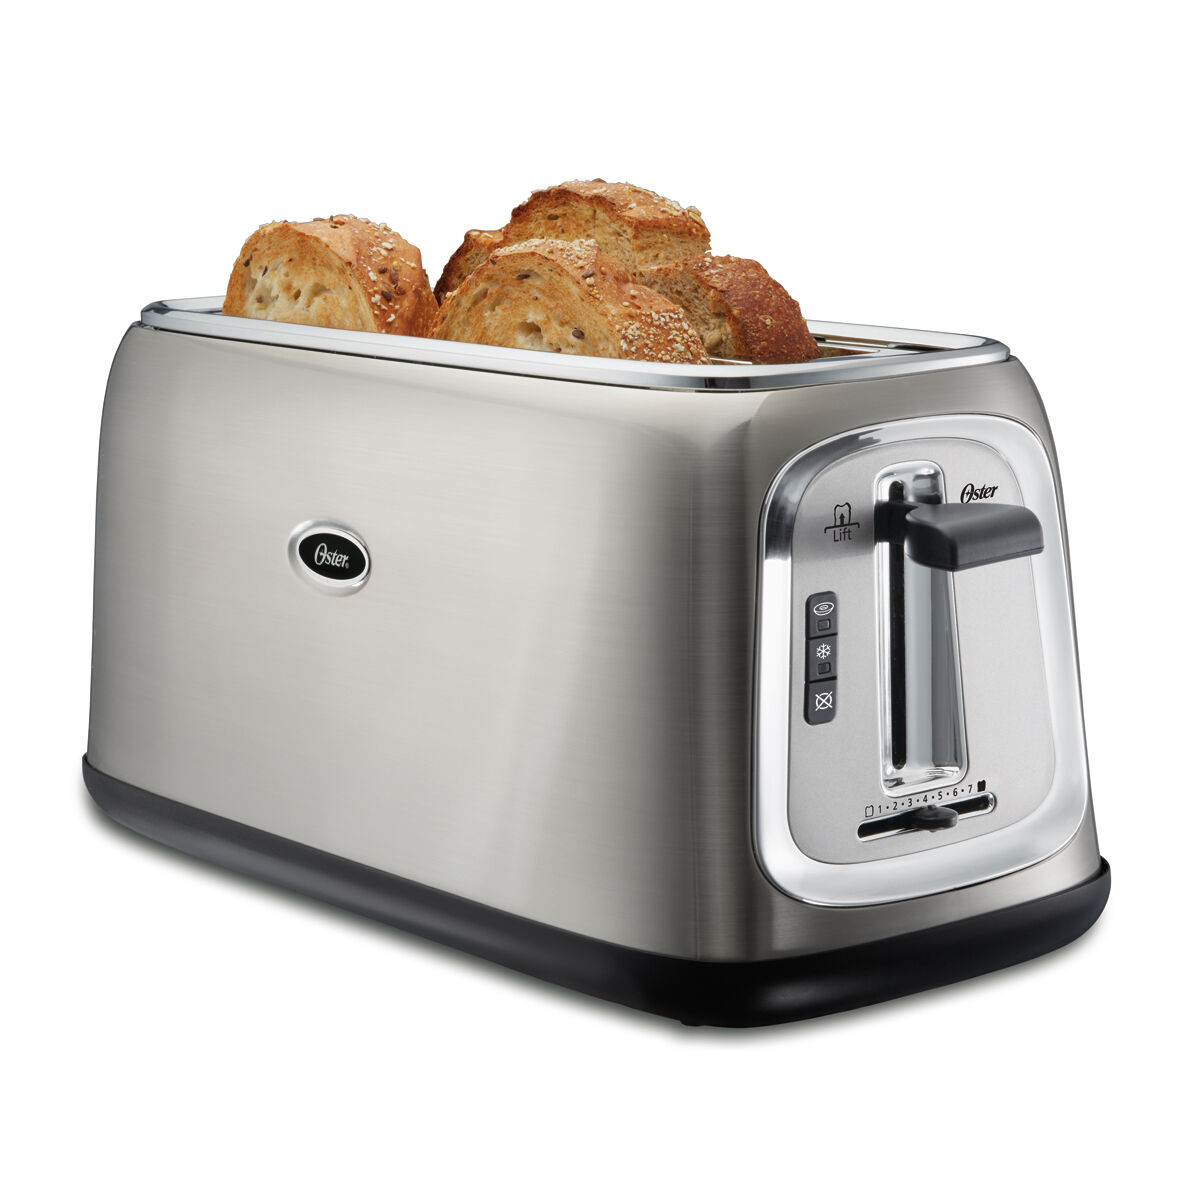 Oster 4 slice long slot toaster review rules of blackjack in a casino